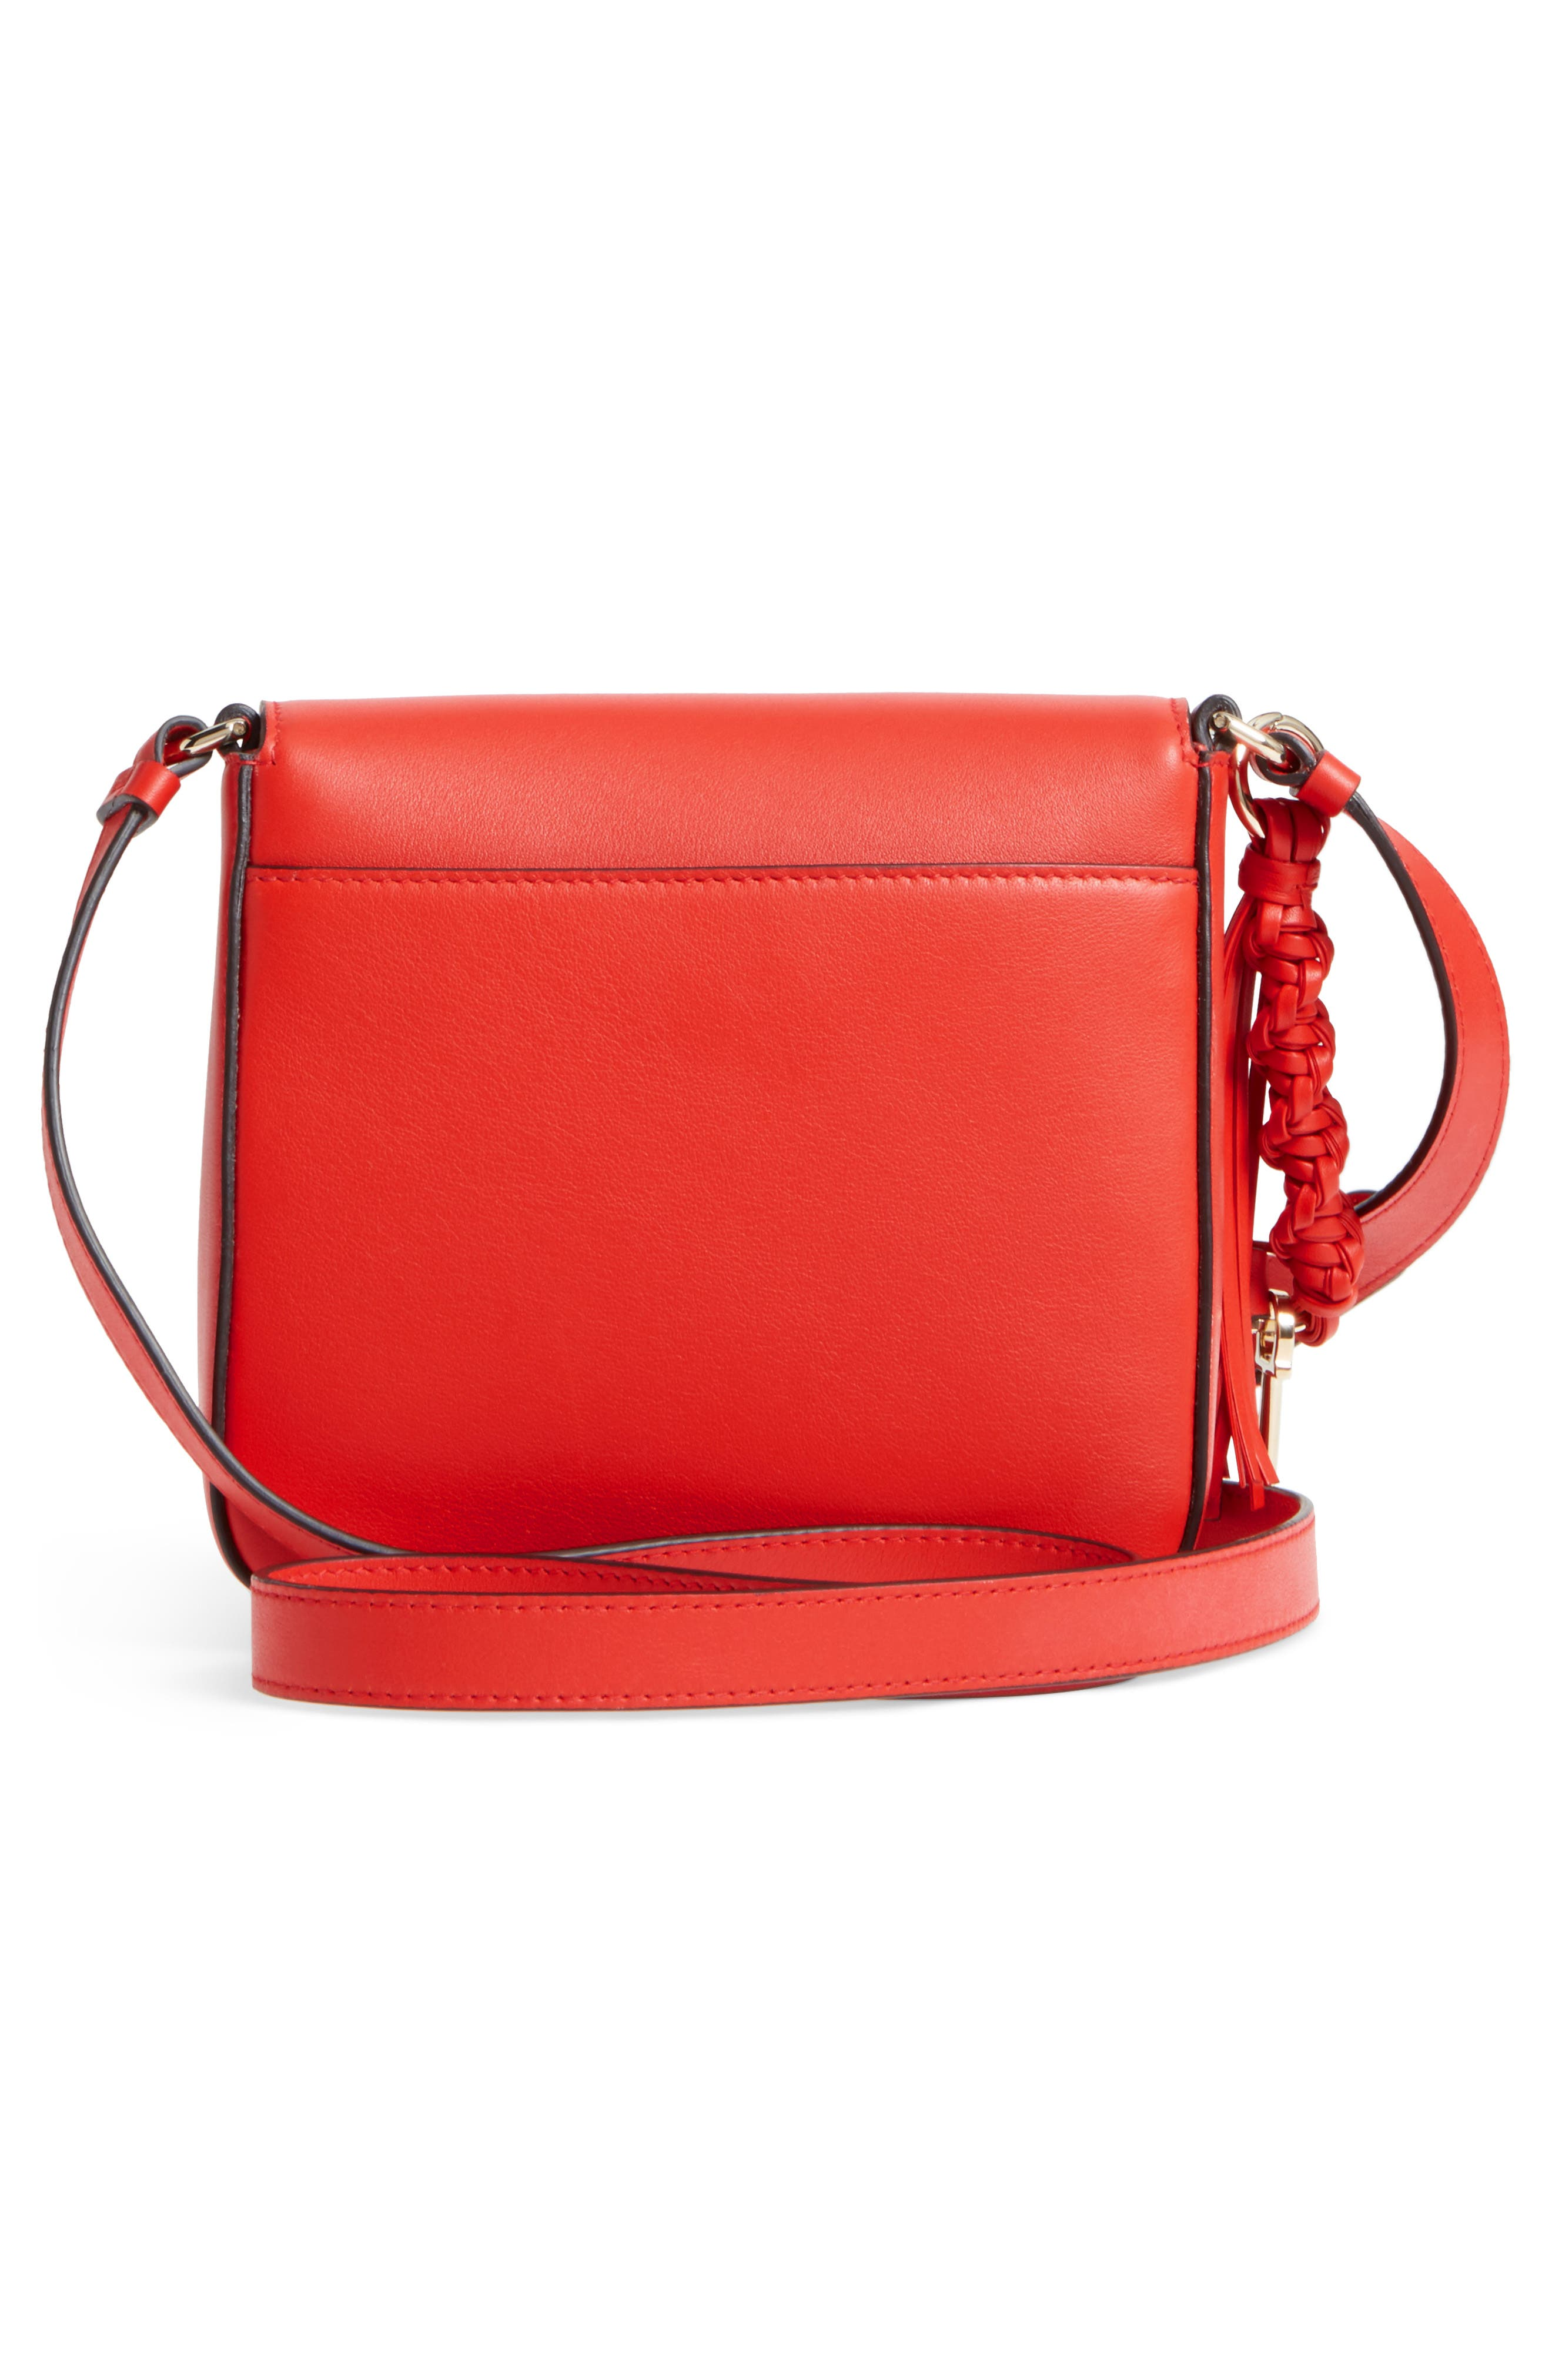 Gancio Lock Leather Crossbody Bag,                             Alternate thumbnail 3, color,                             950